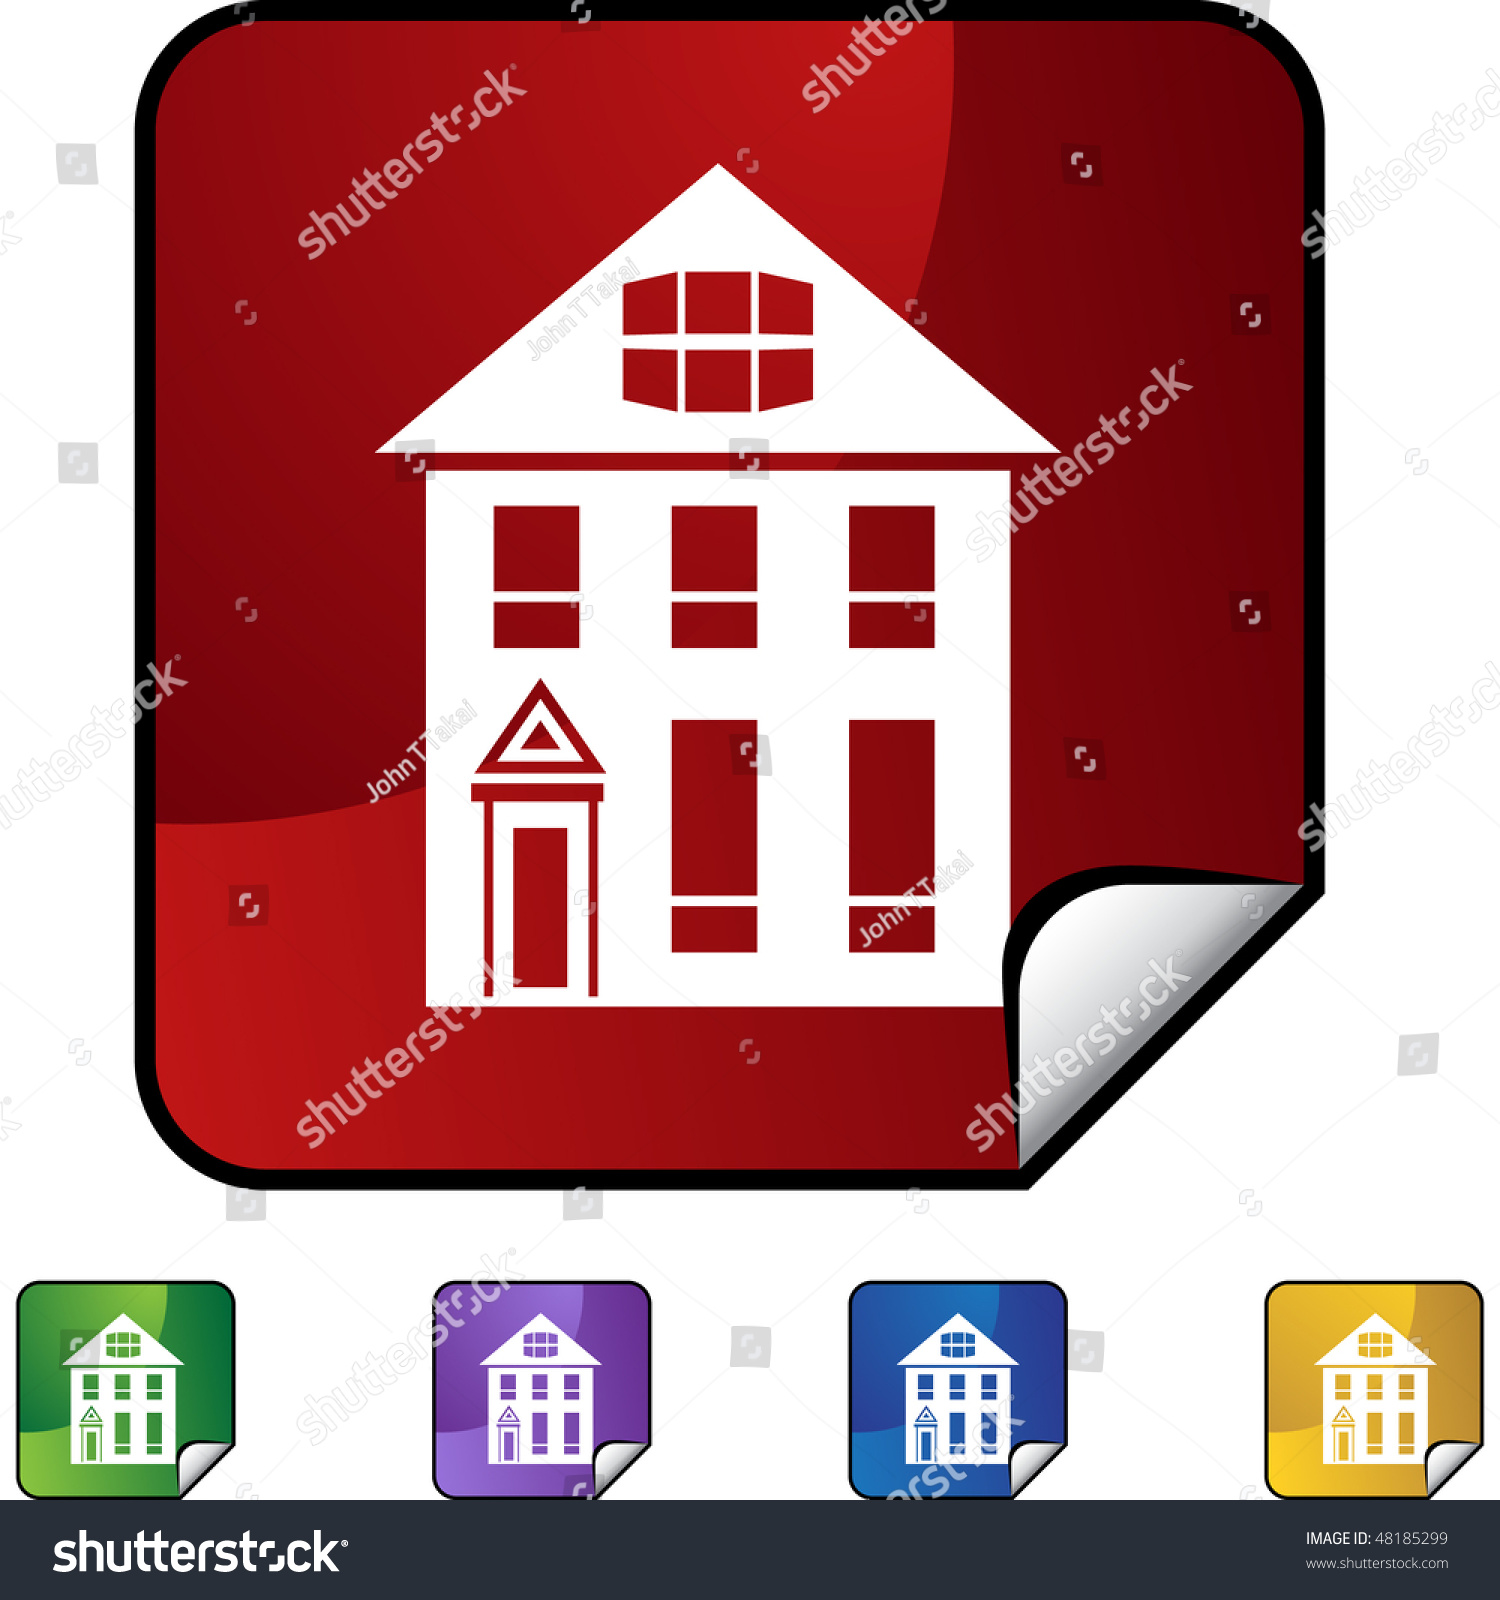 Building symbol isolated web icon on stock vector 48185299 building symbol isolated web icon on a background biocorpaavc Image collections